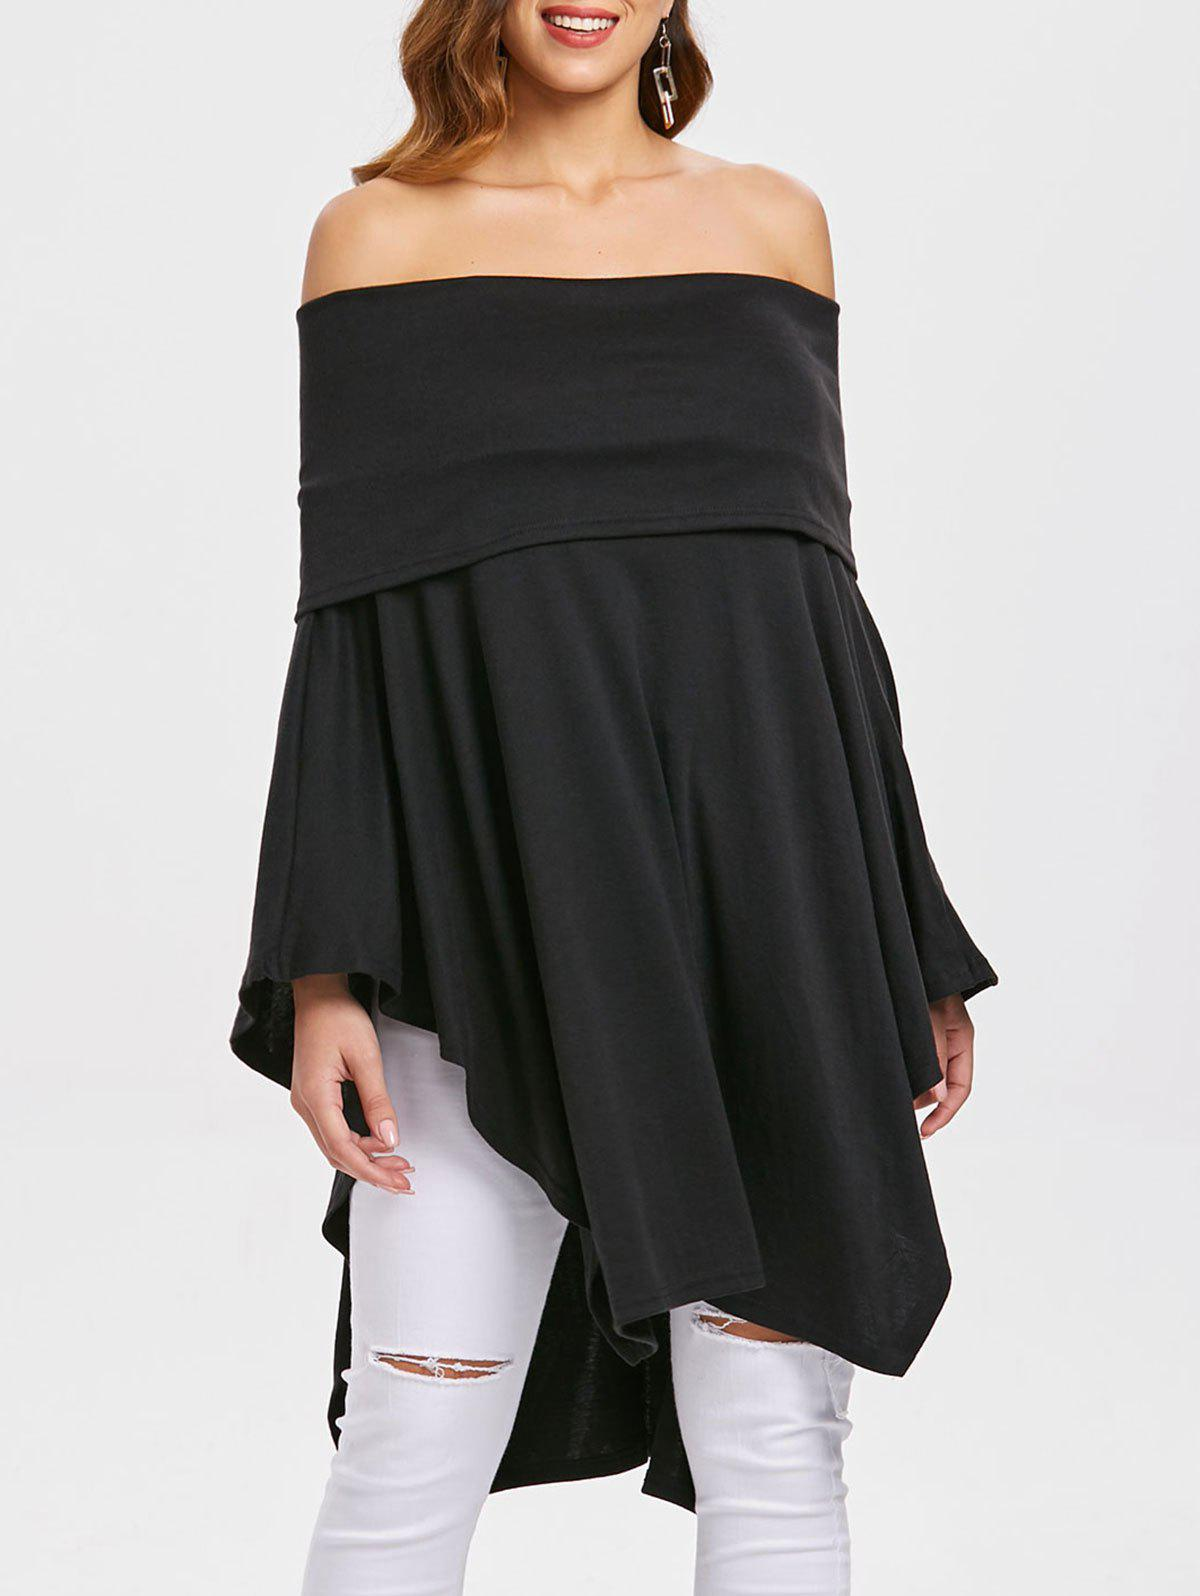 Women Fashion Pure Color Sexy Boat Neck Batwing Sleeve Irregular Knitwear Casual Loose Tops T-shirts - BLACK L